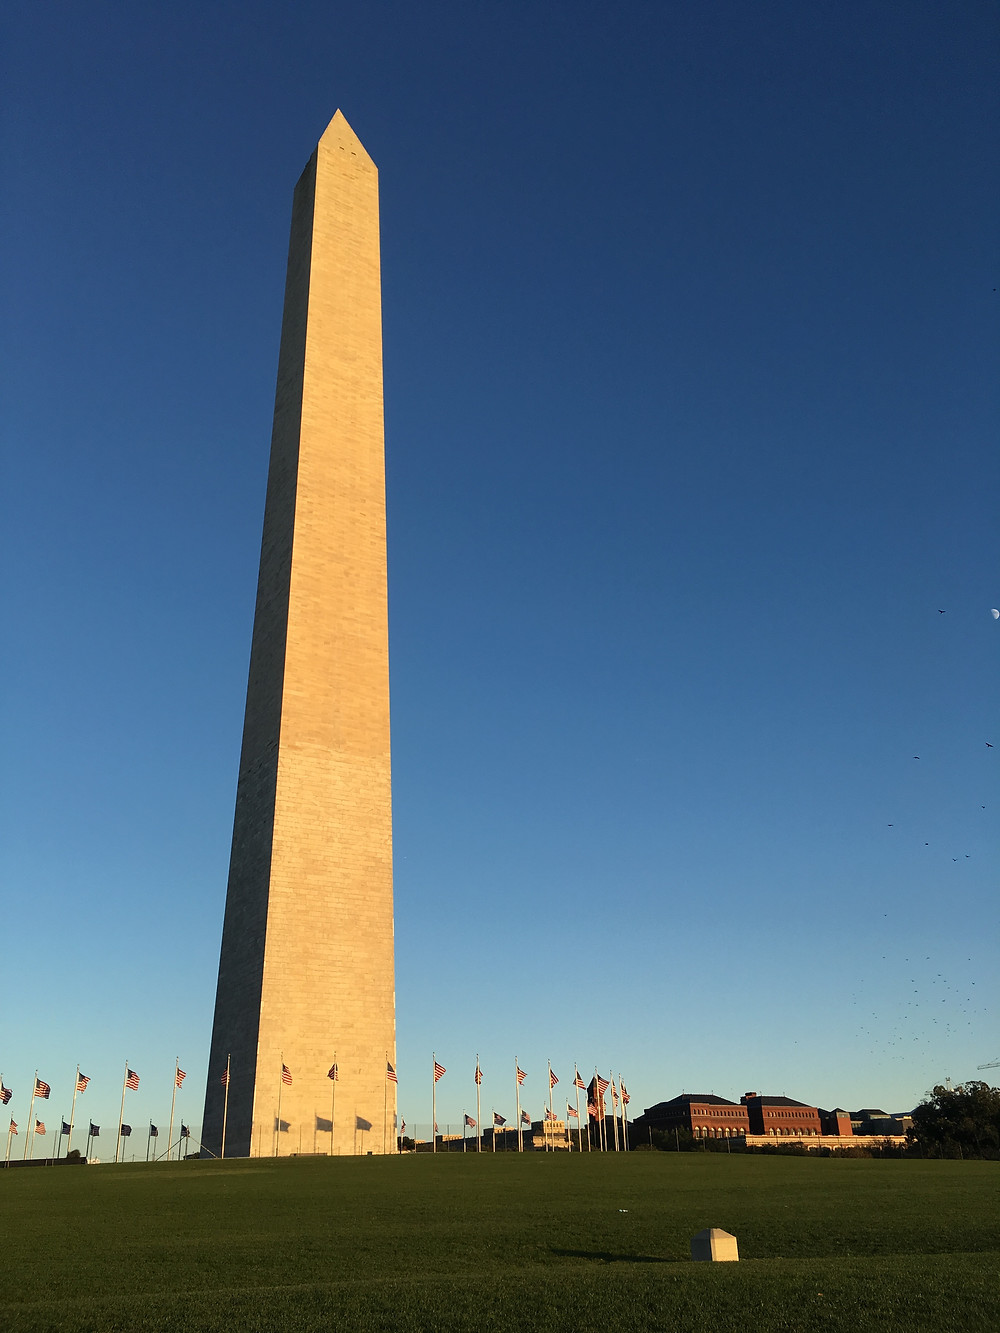 Washington Monument with the Jefferson Pier in the foreground